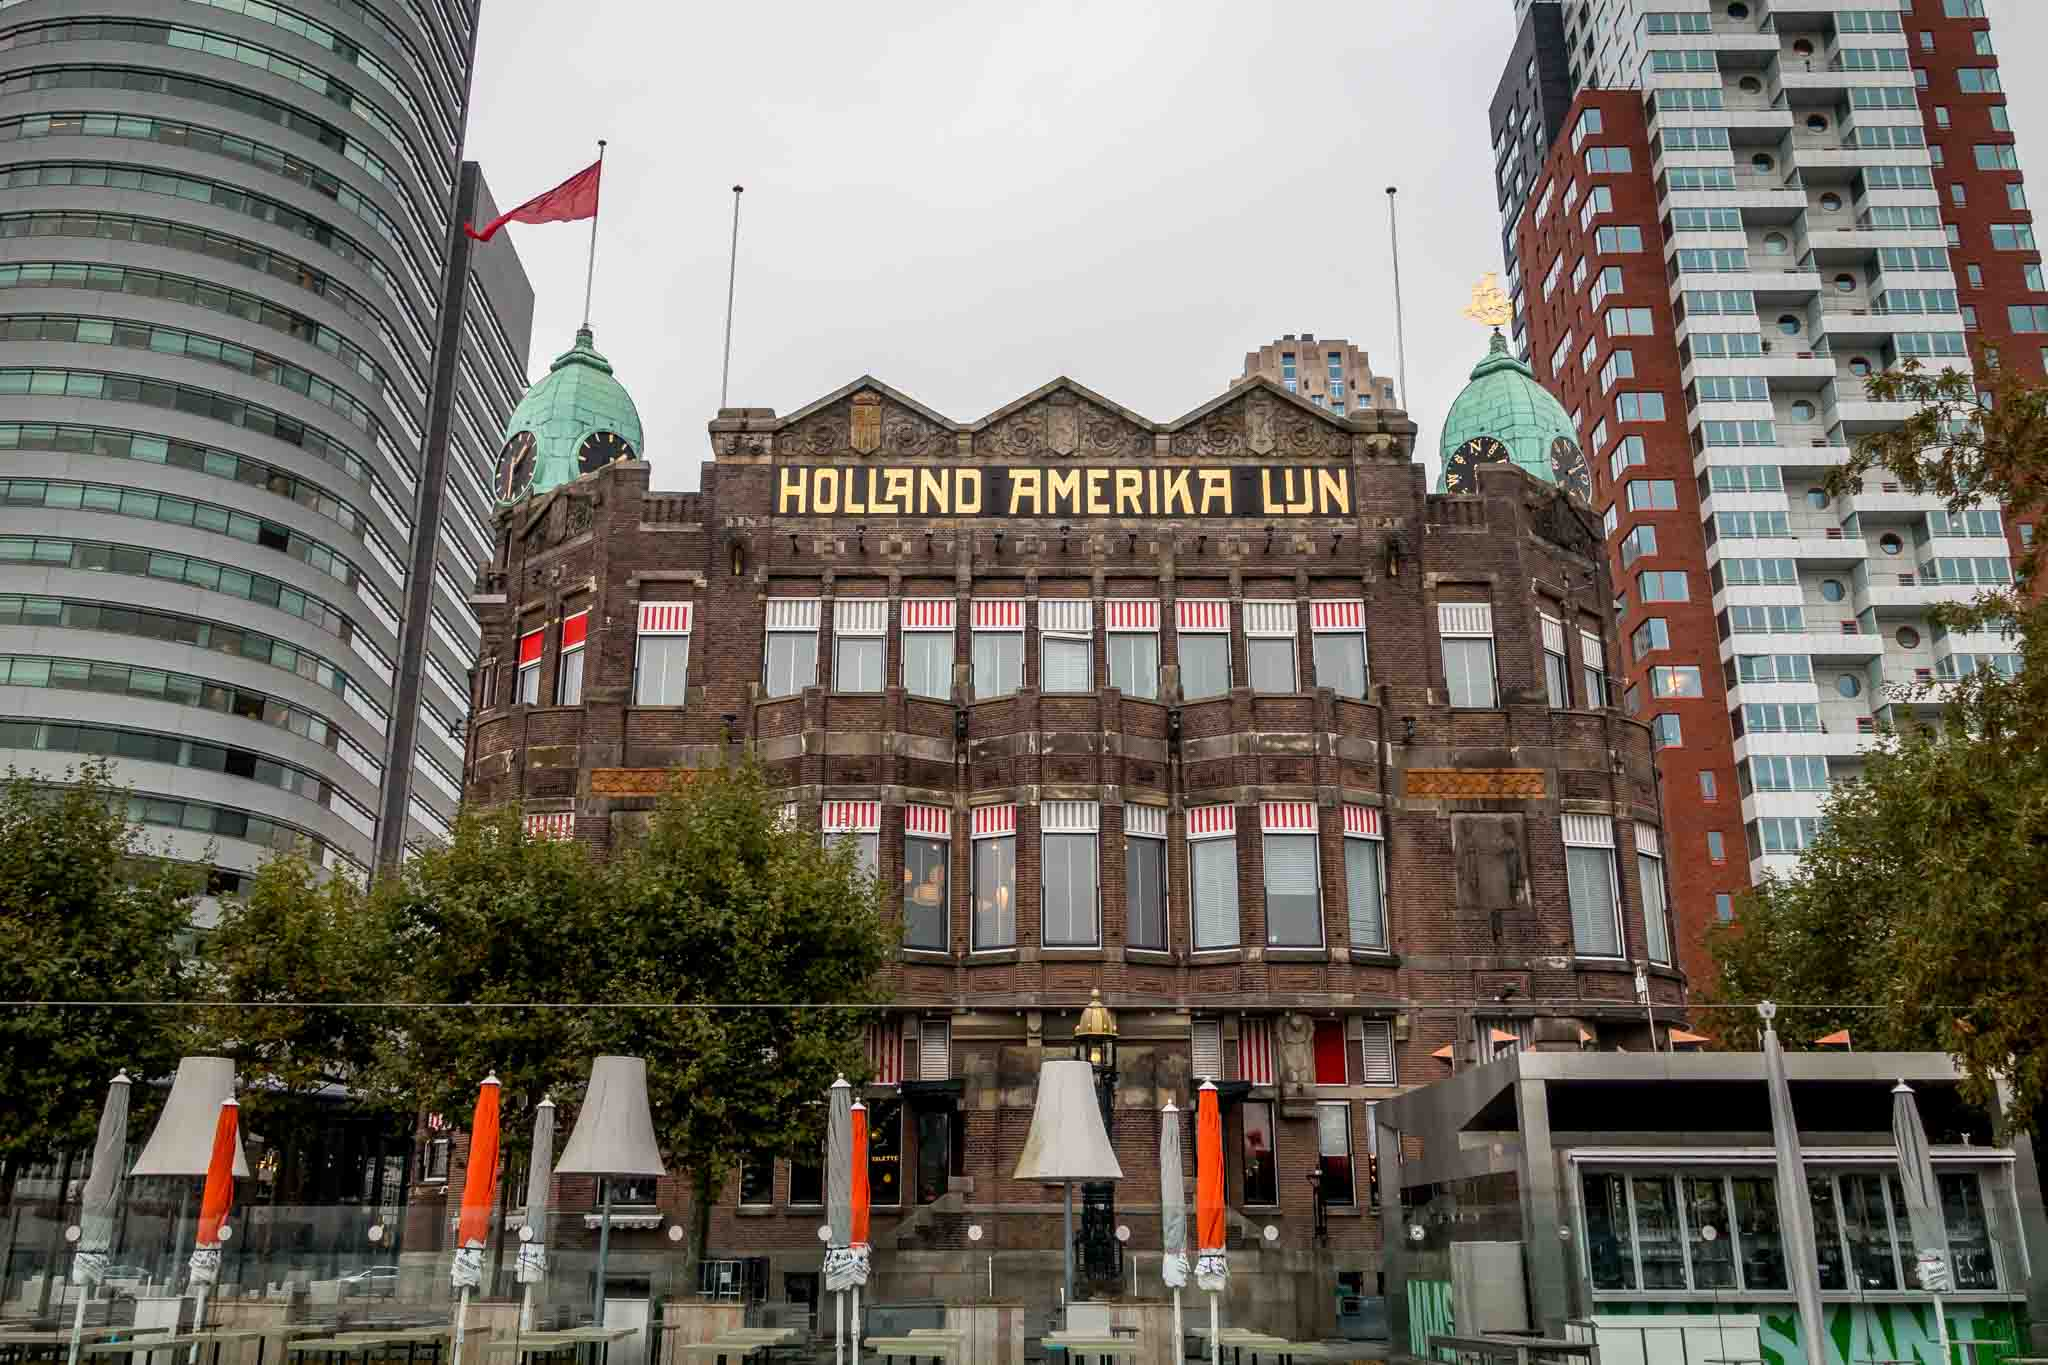 The original Holland America Lines headquarters is now the Hotel New York